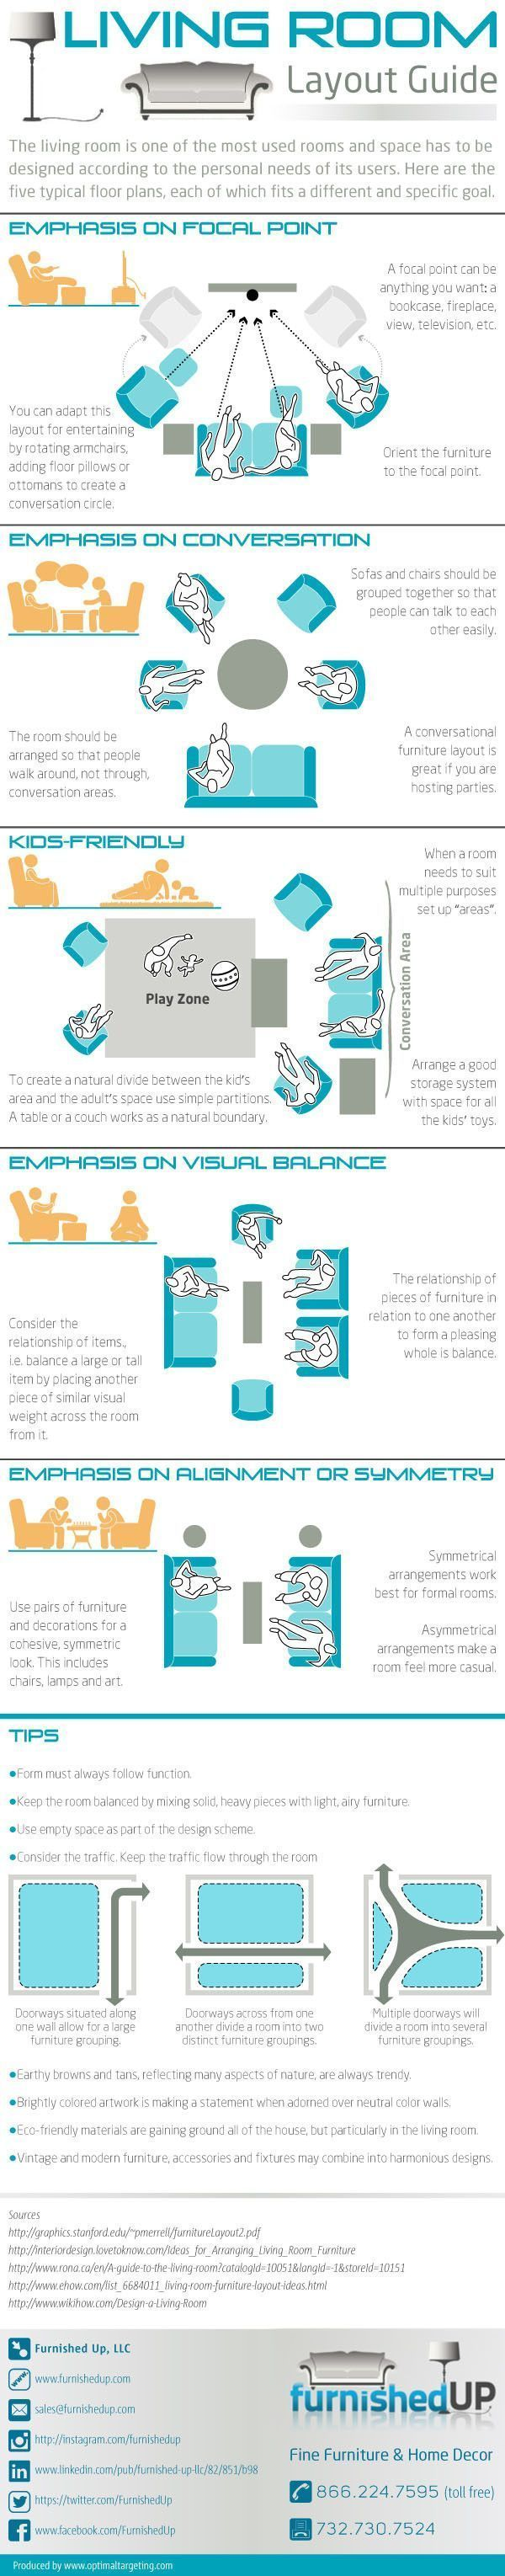 There are many ways to make your living room work for you and your loved ones while being a beautiful space that makes you want to stay in it for long periods. Learn more tips on living room layouts with this new and helpful infographic from Furnished Up, makes of fine furniture and home decor today.